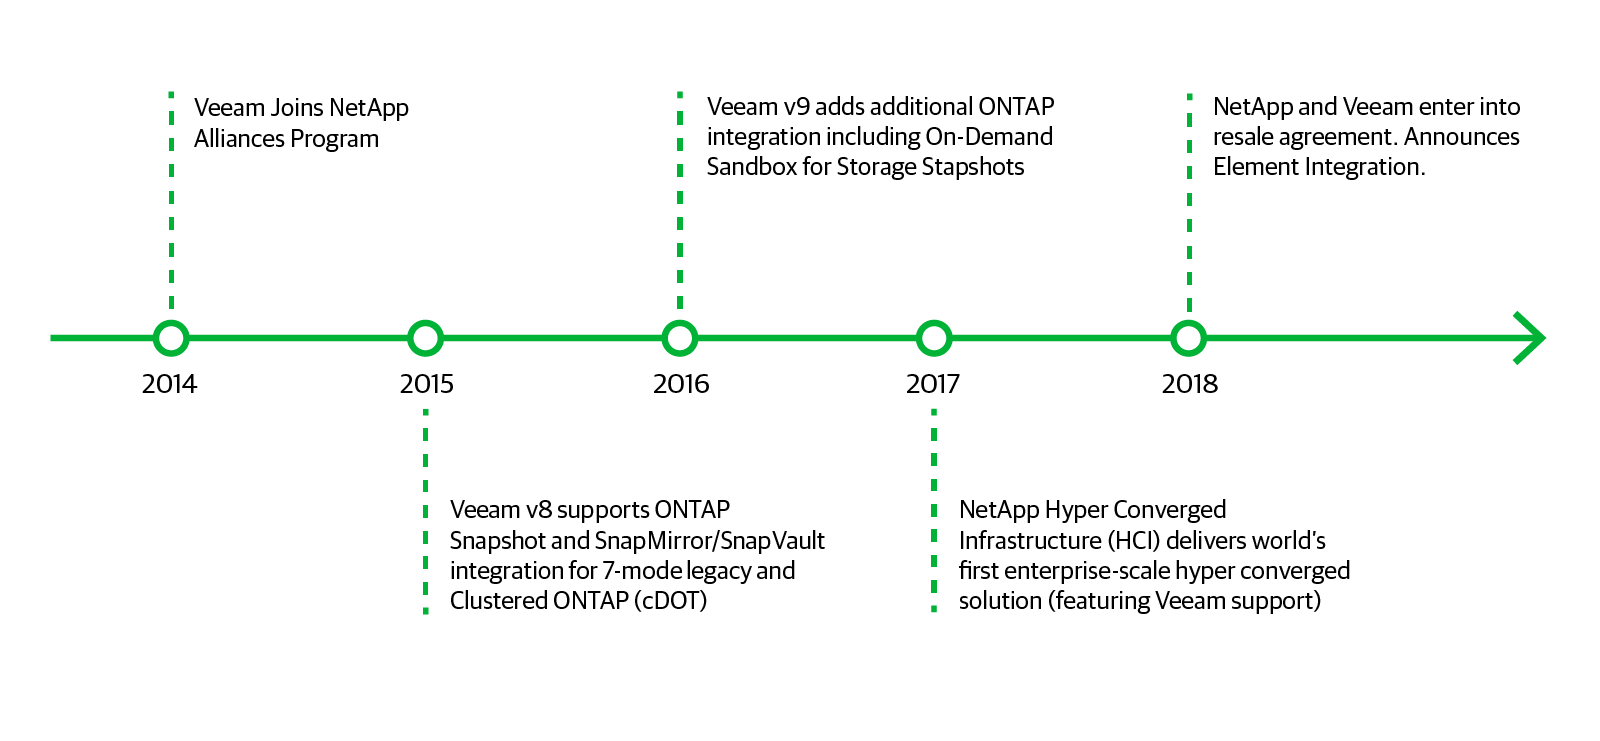 Native storage integration with Element to Veeam Backup